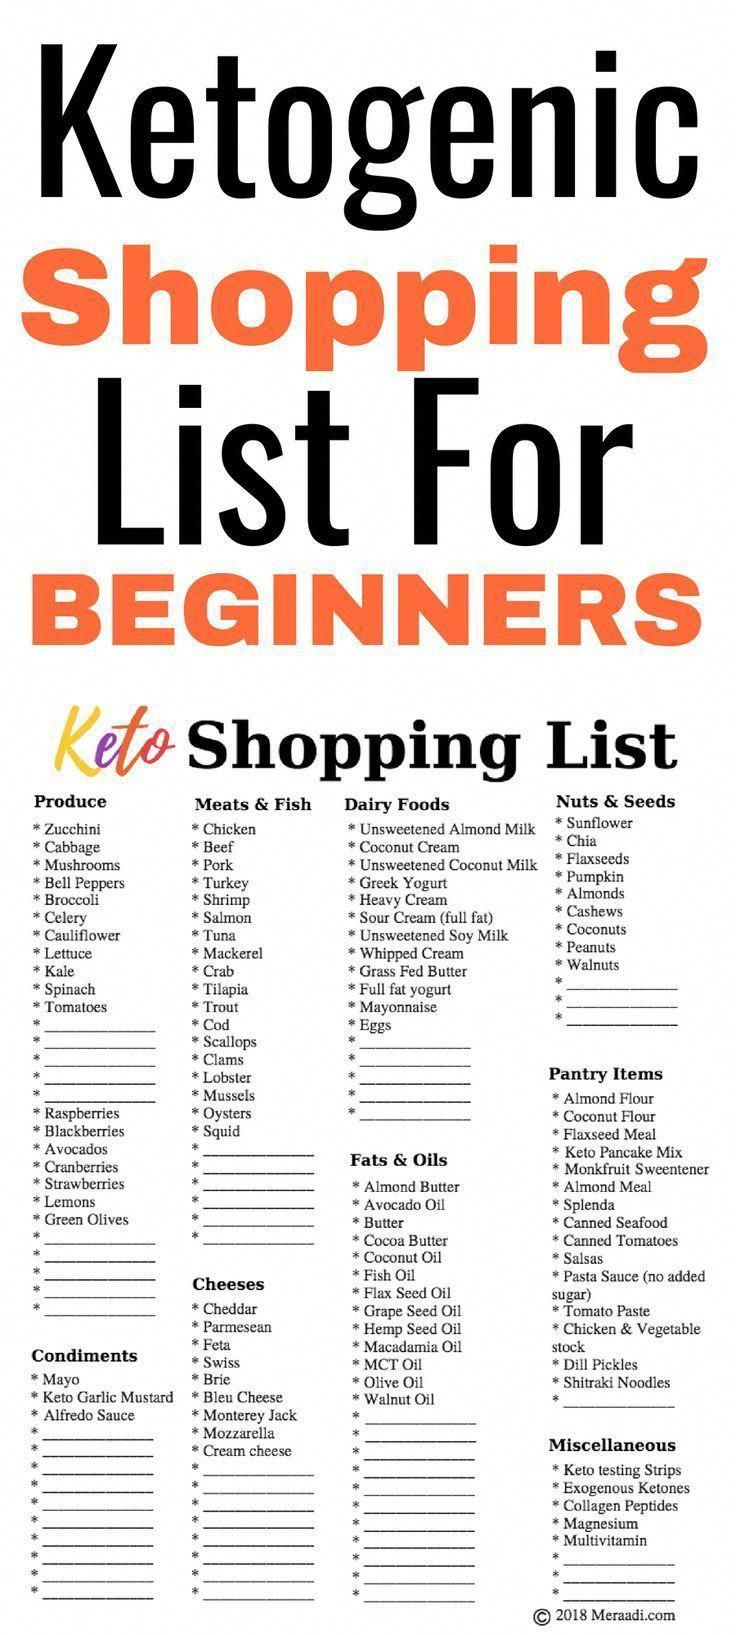 This ketogenic shopping list is THE EBST! I've finally